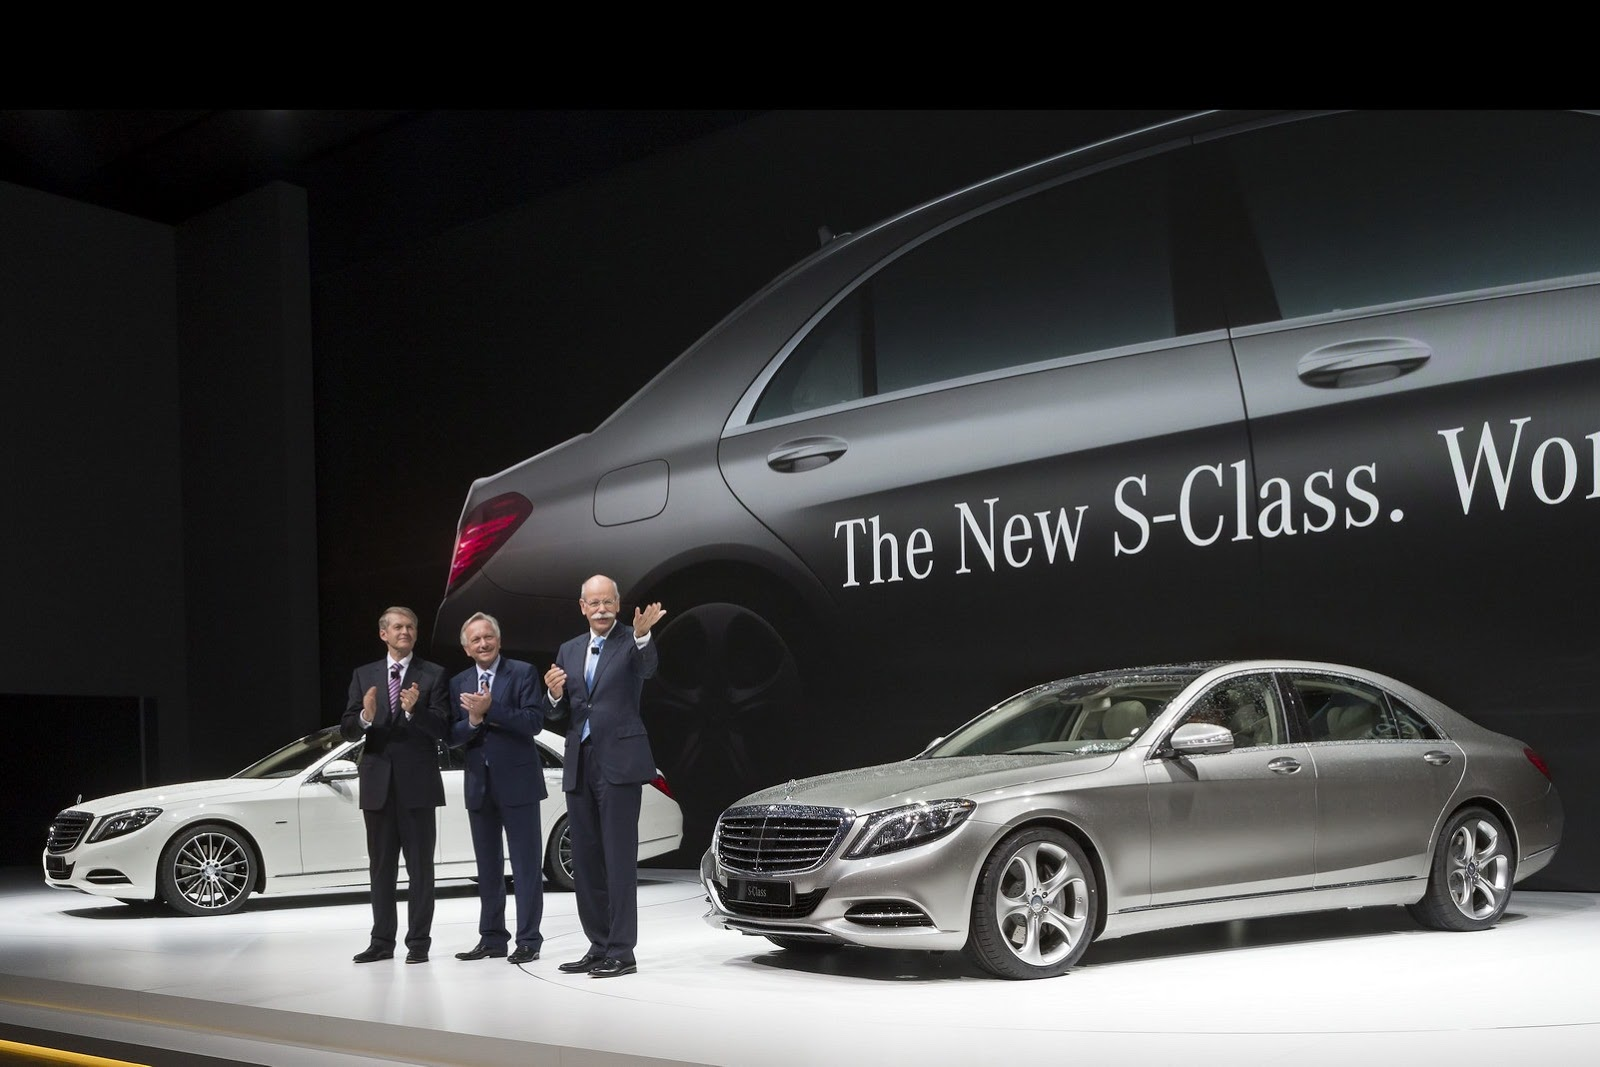 2014 Mercedes Benz S-Class Reveal Event - SMADE MEDIA (9)